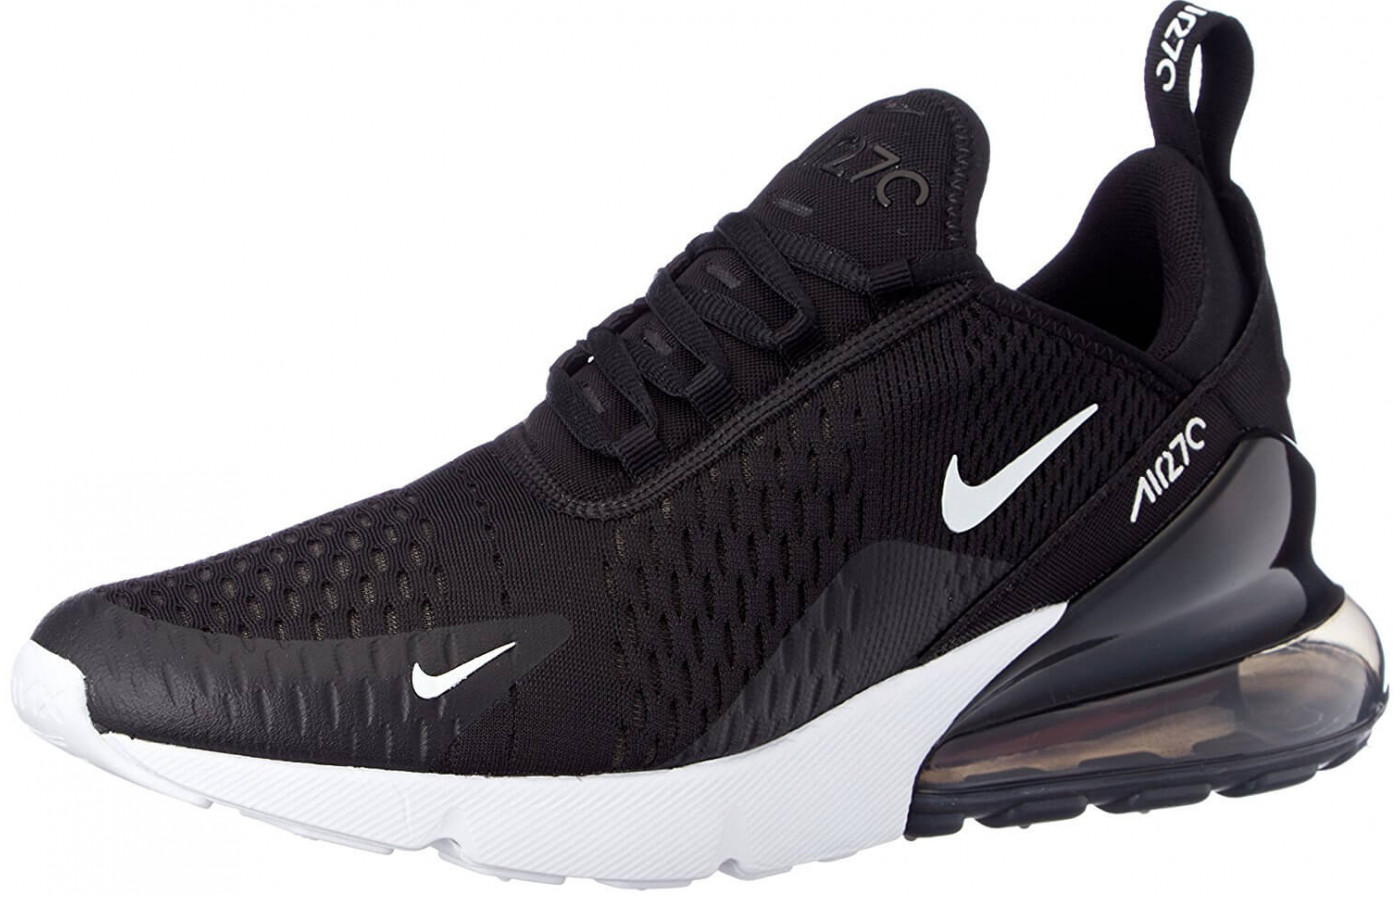 f56e0f68be Nike Air Max 270. Mesh upper and 270 degrees of Air ...